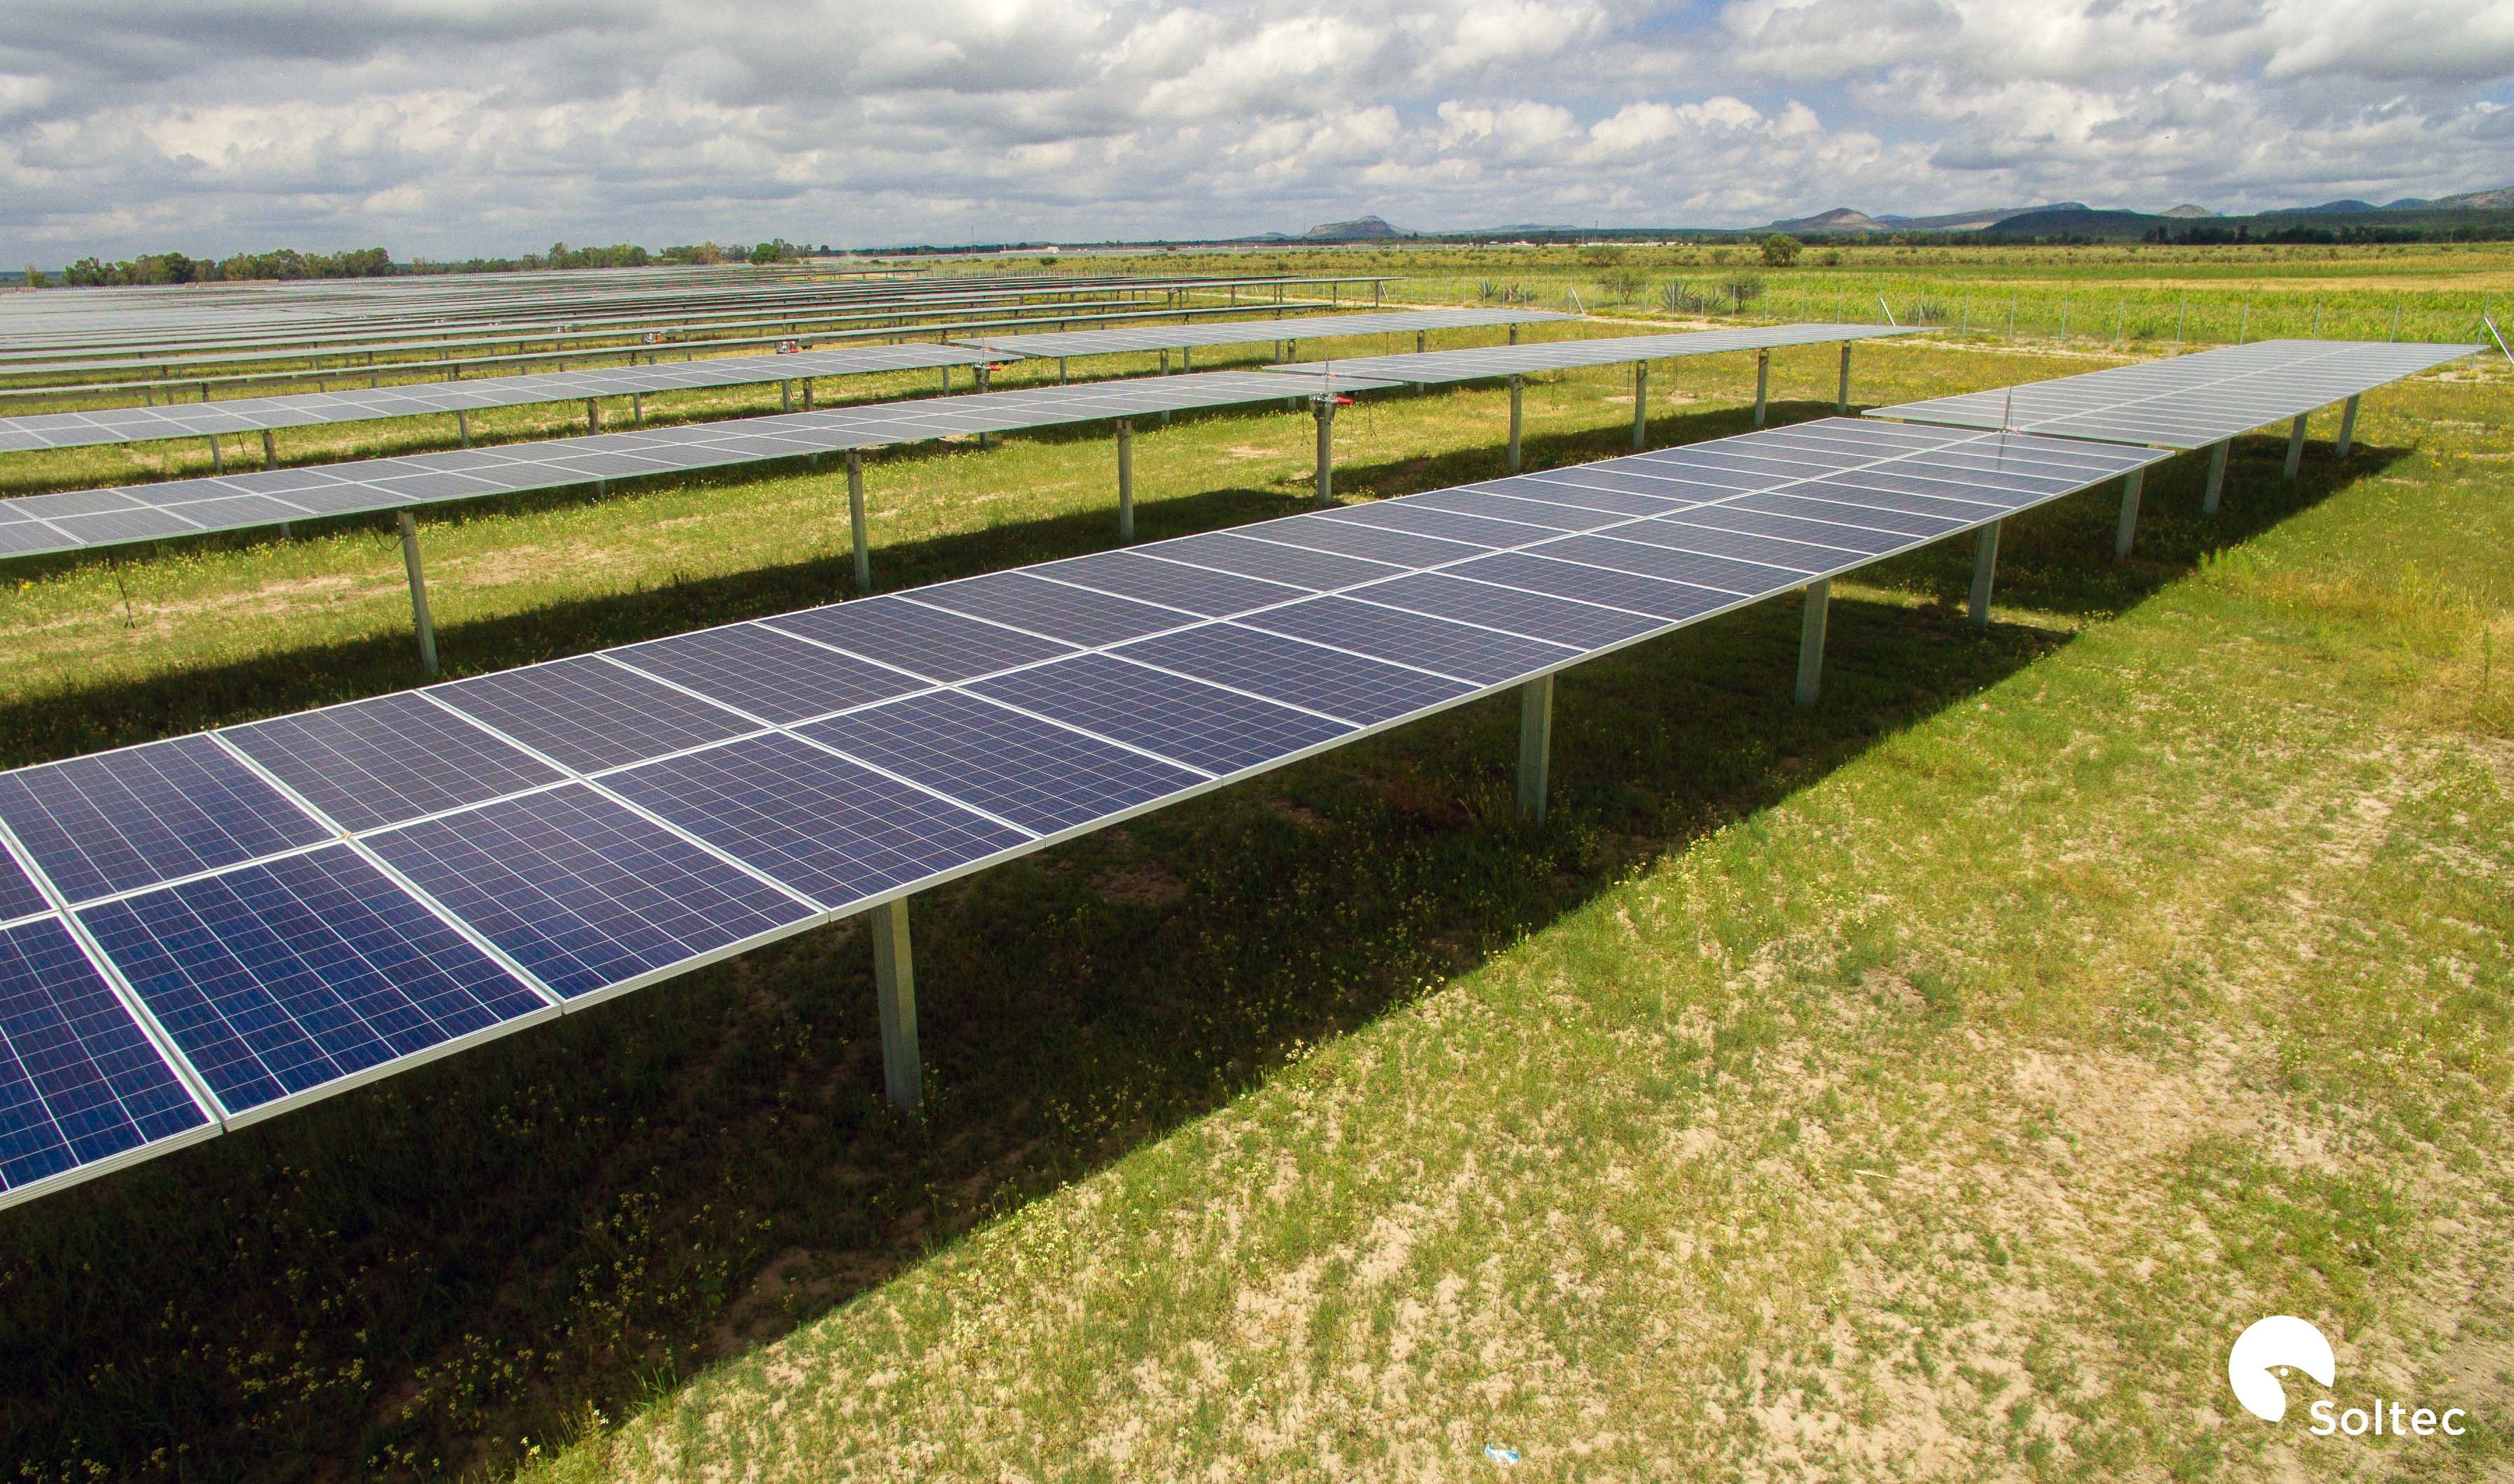 Soltec's PV Plant with SF7 Single-Axis Trackers